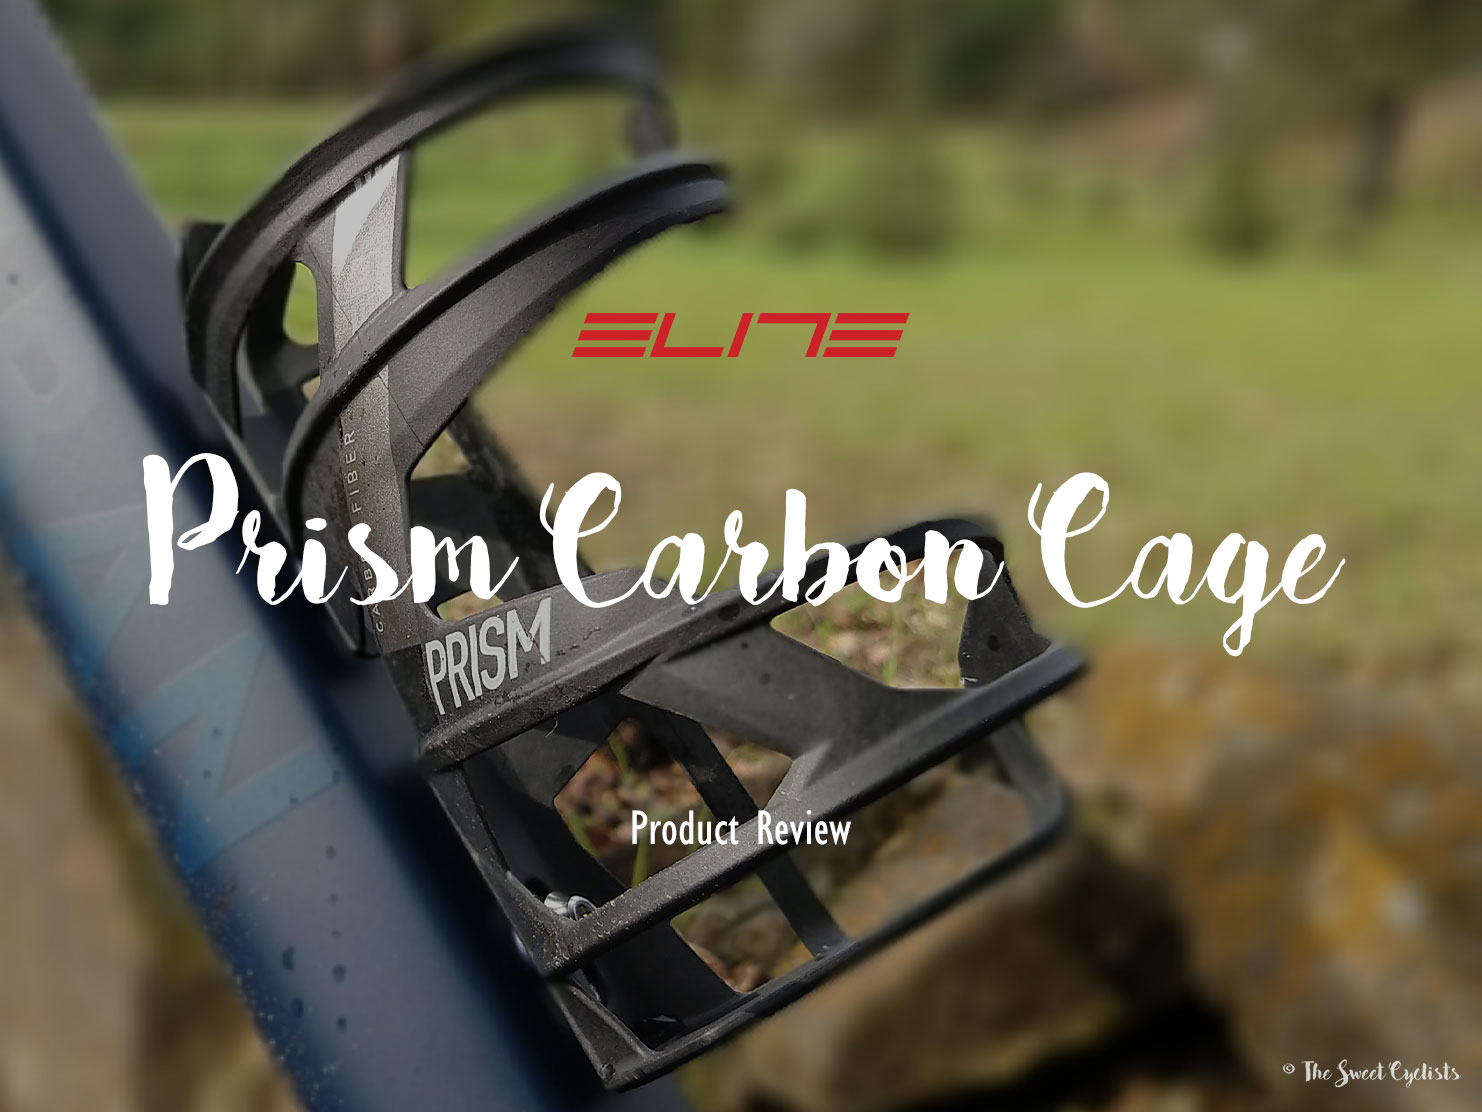 Elite Prism Carbon, a premium Side-entry bottle cage